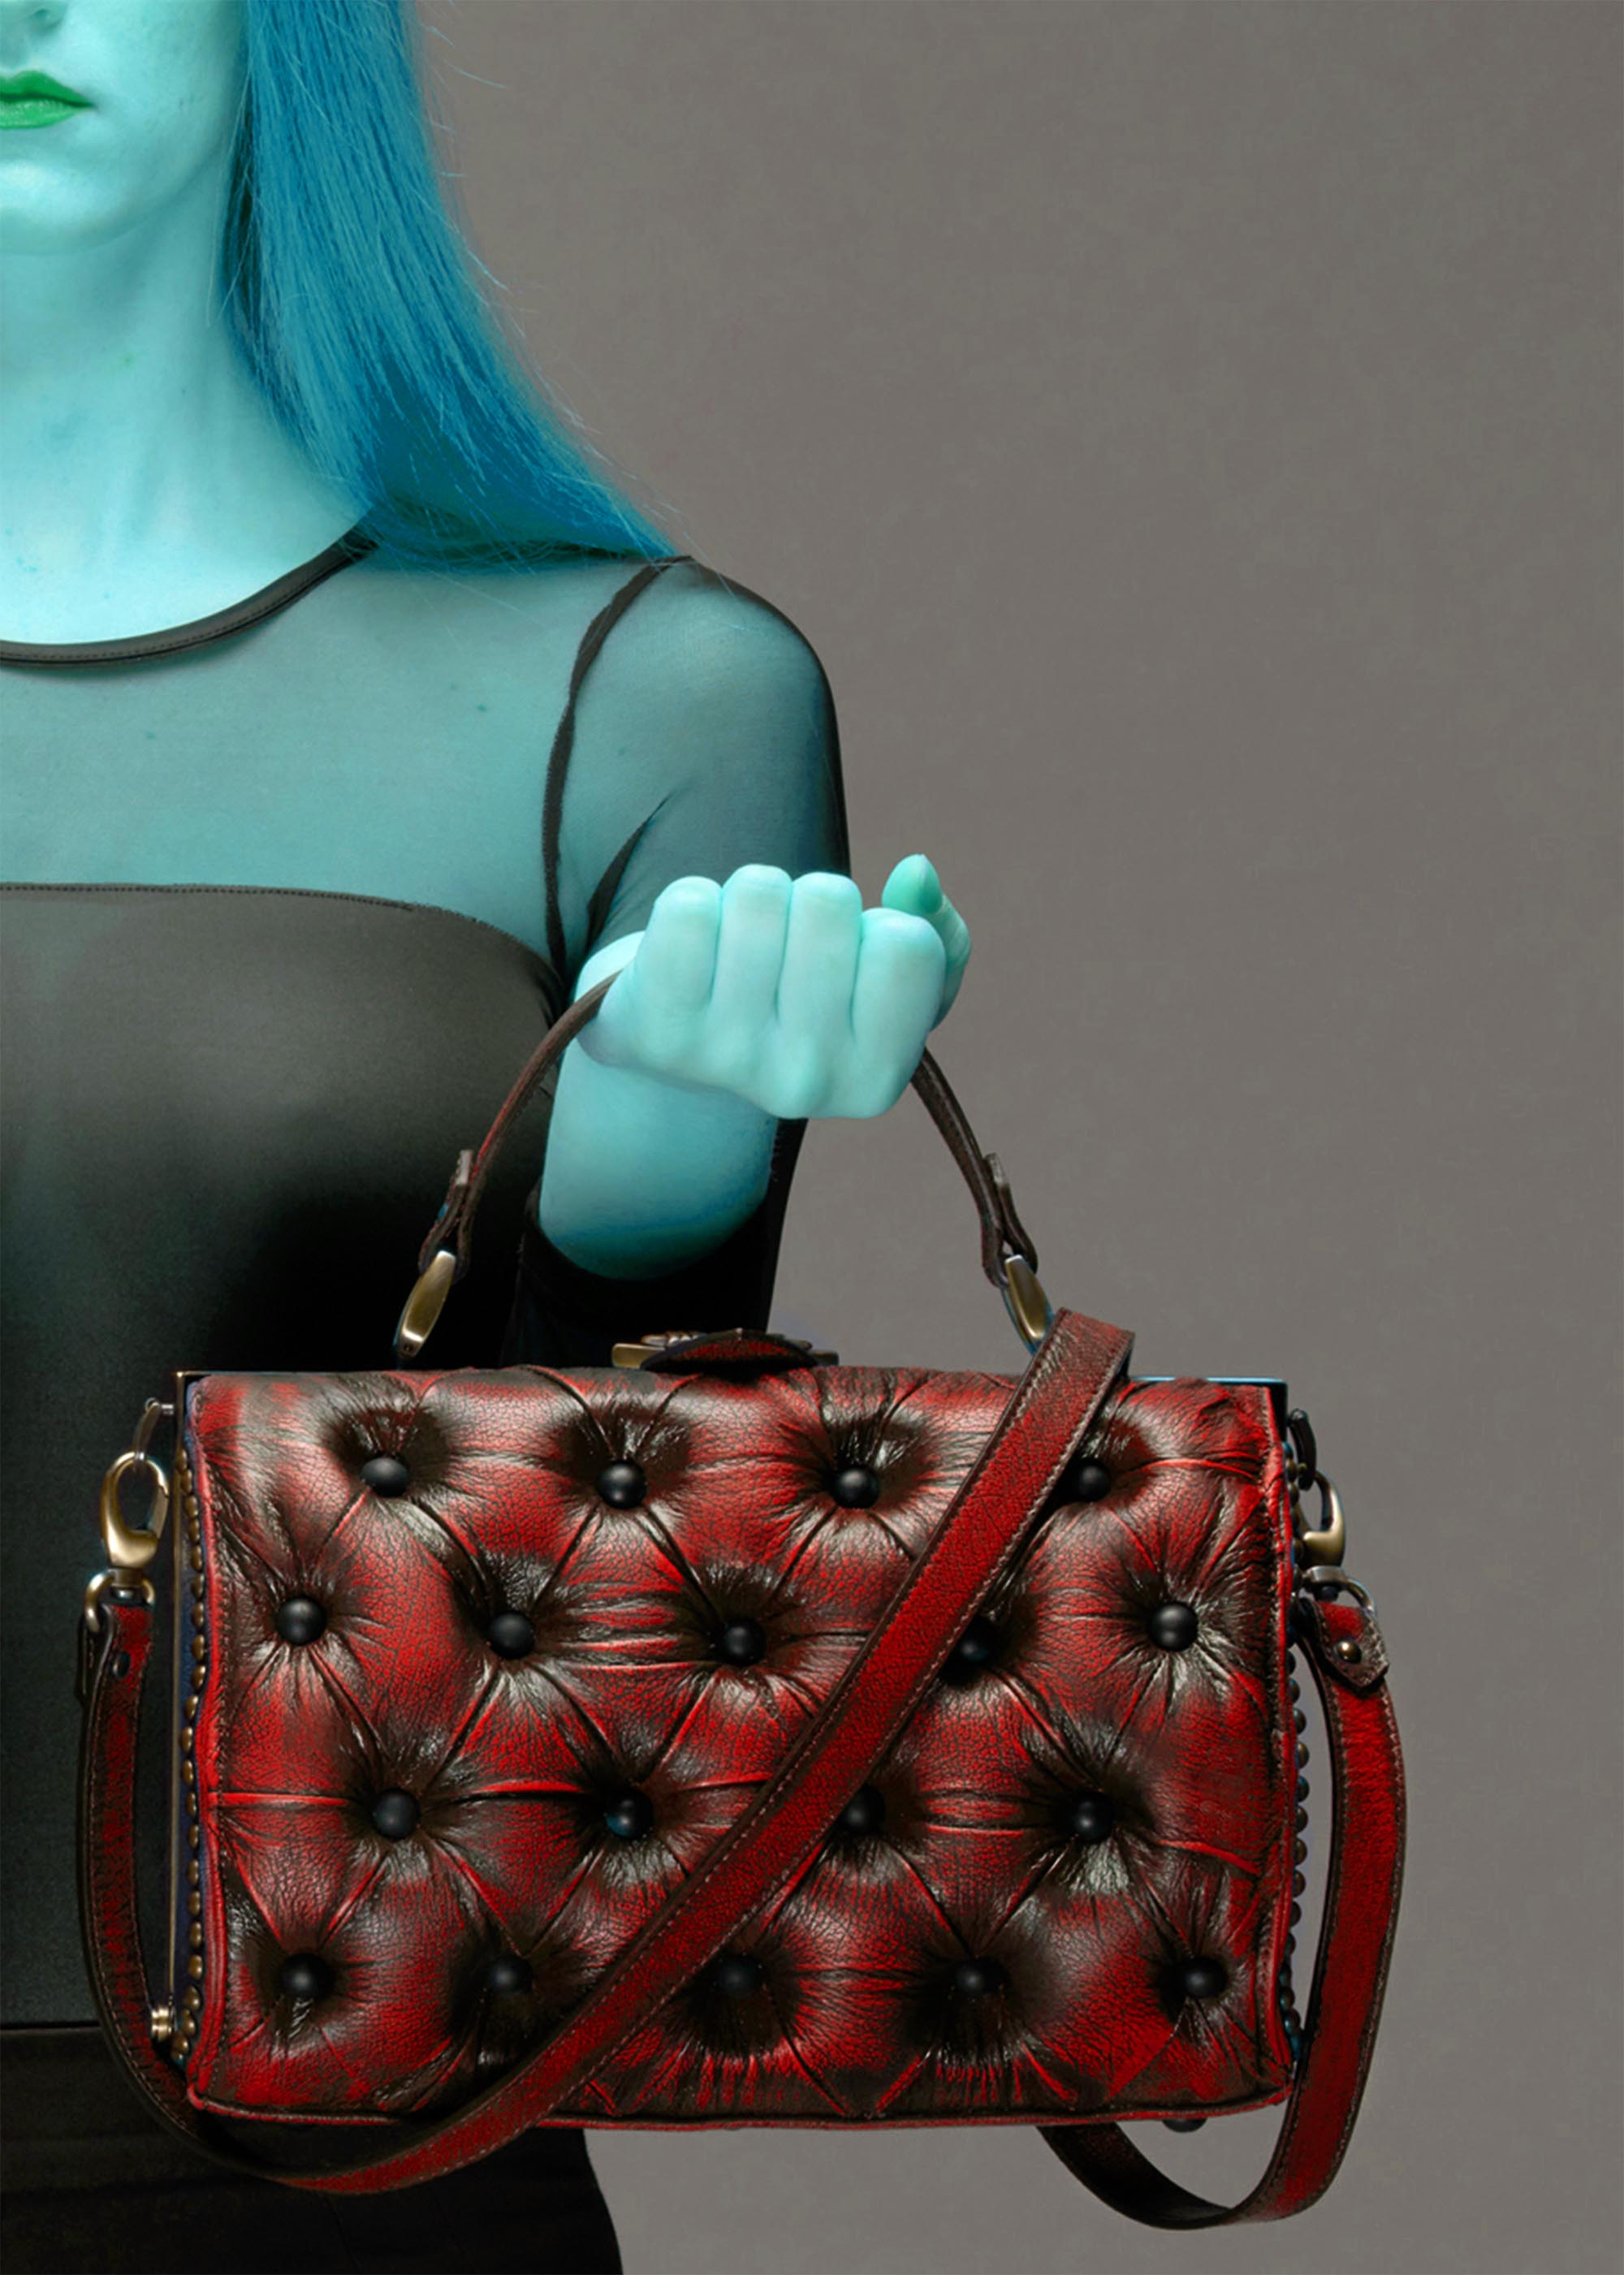 harleq bag leather red